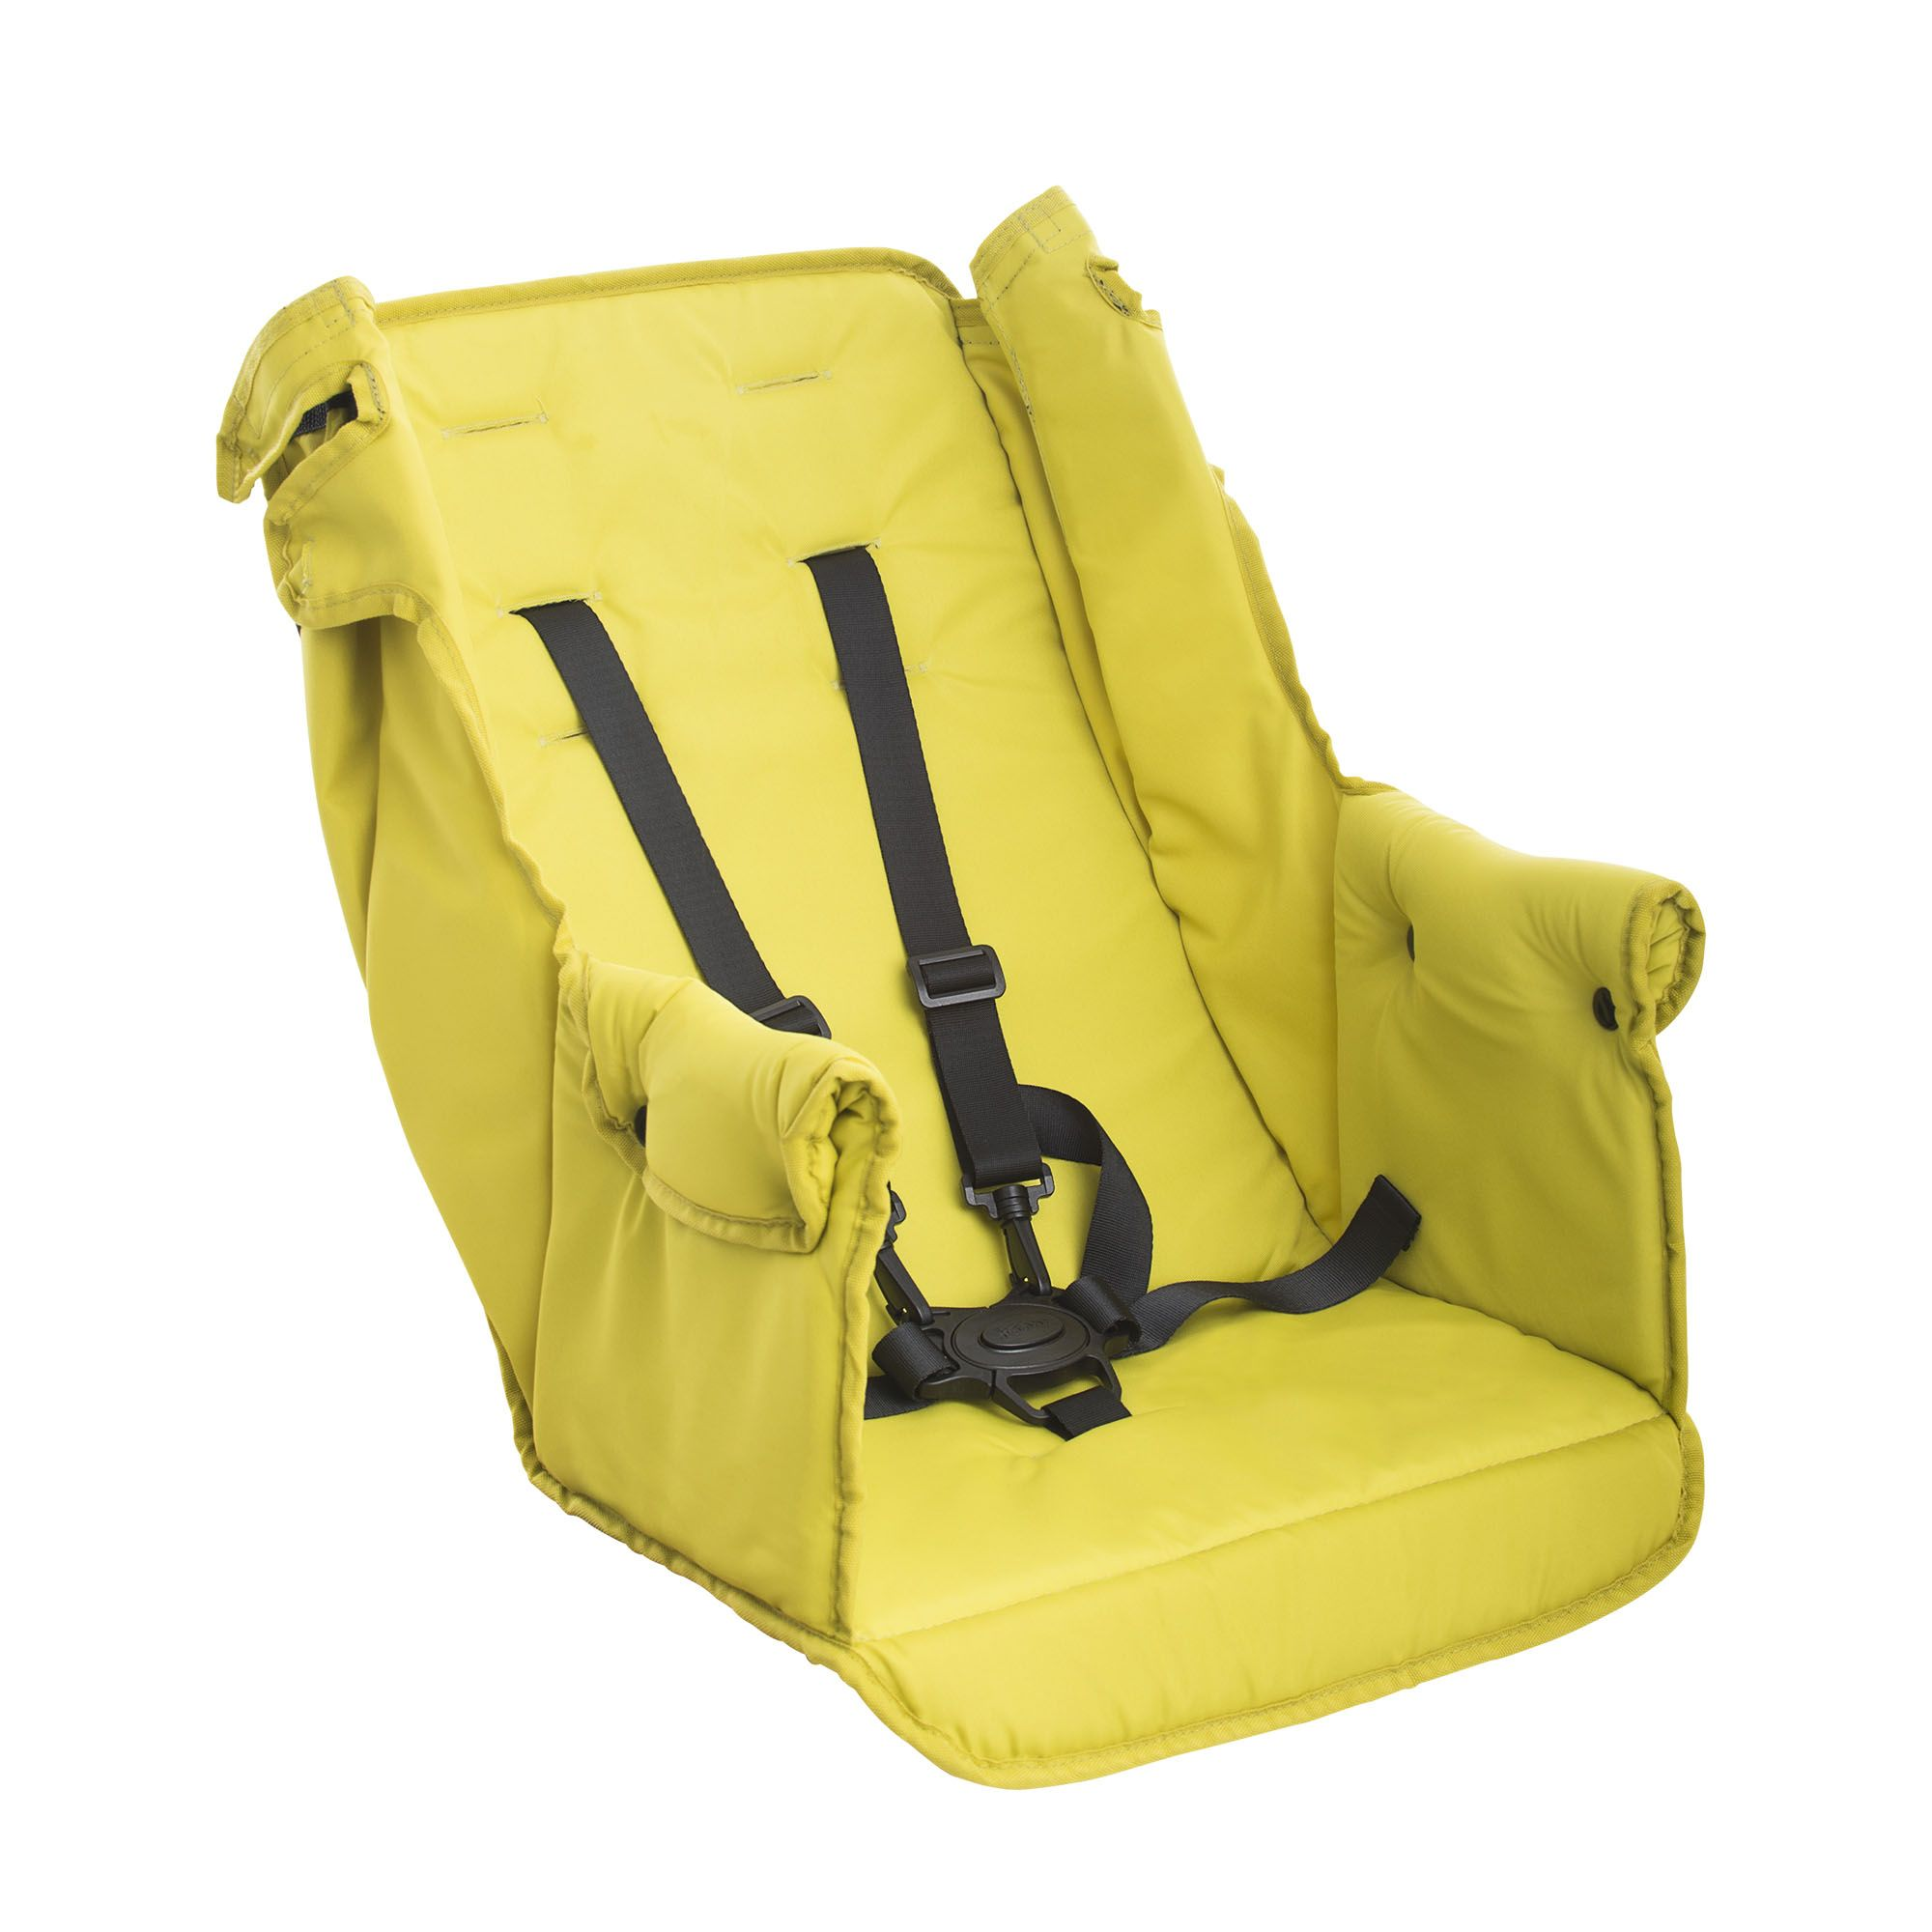 Caboose Sit and Stand Stroller Rear Seat Umbrella